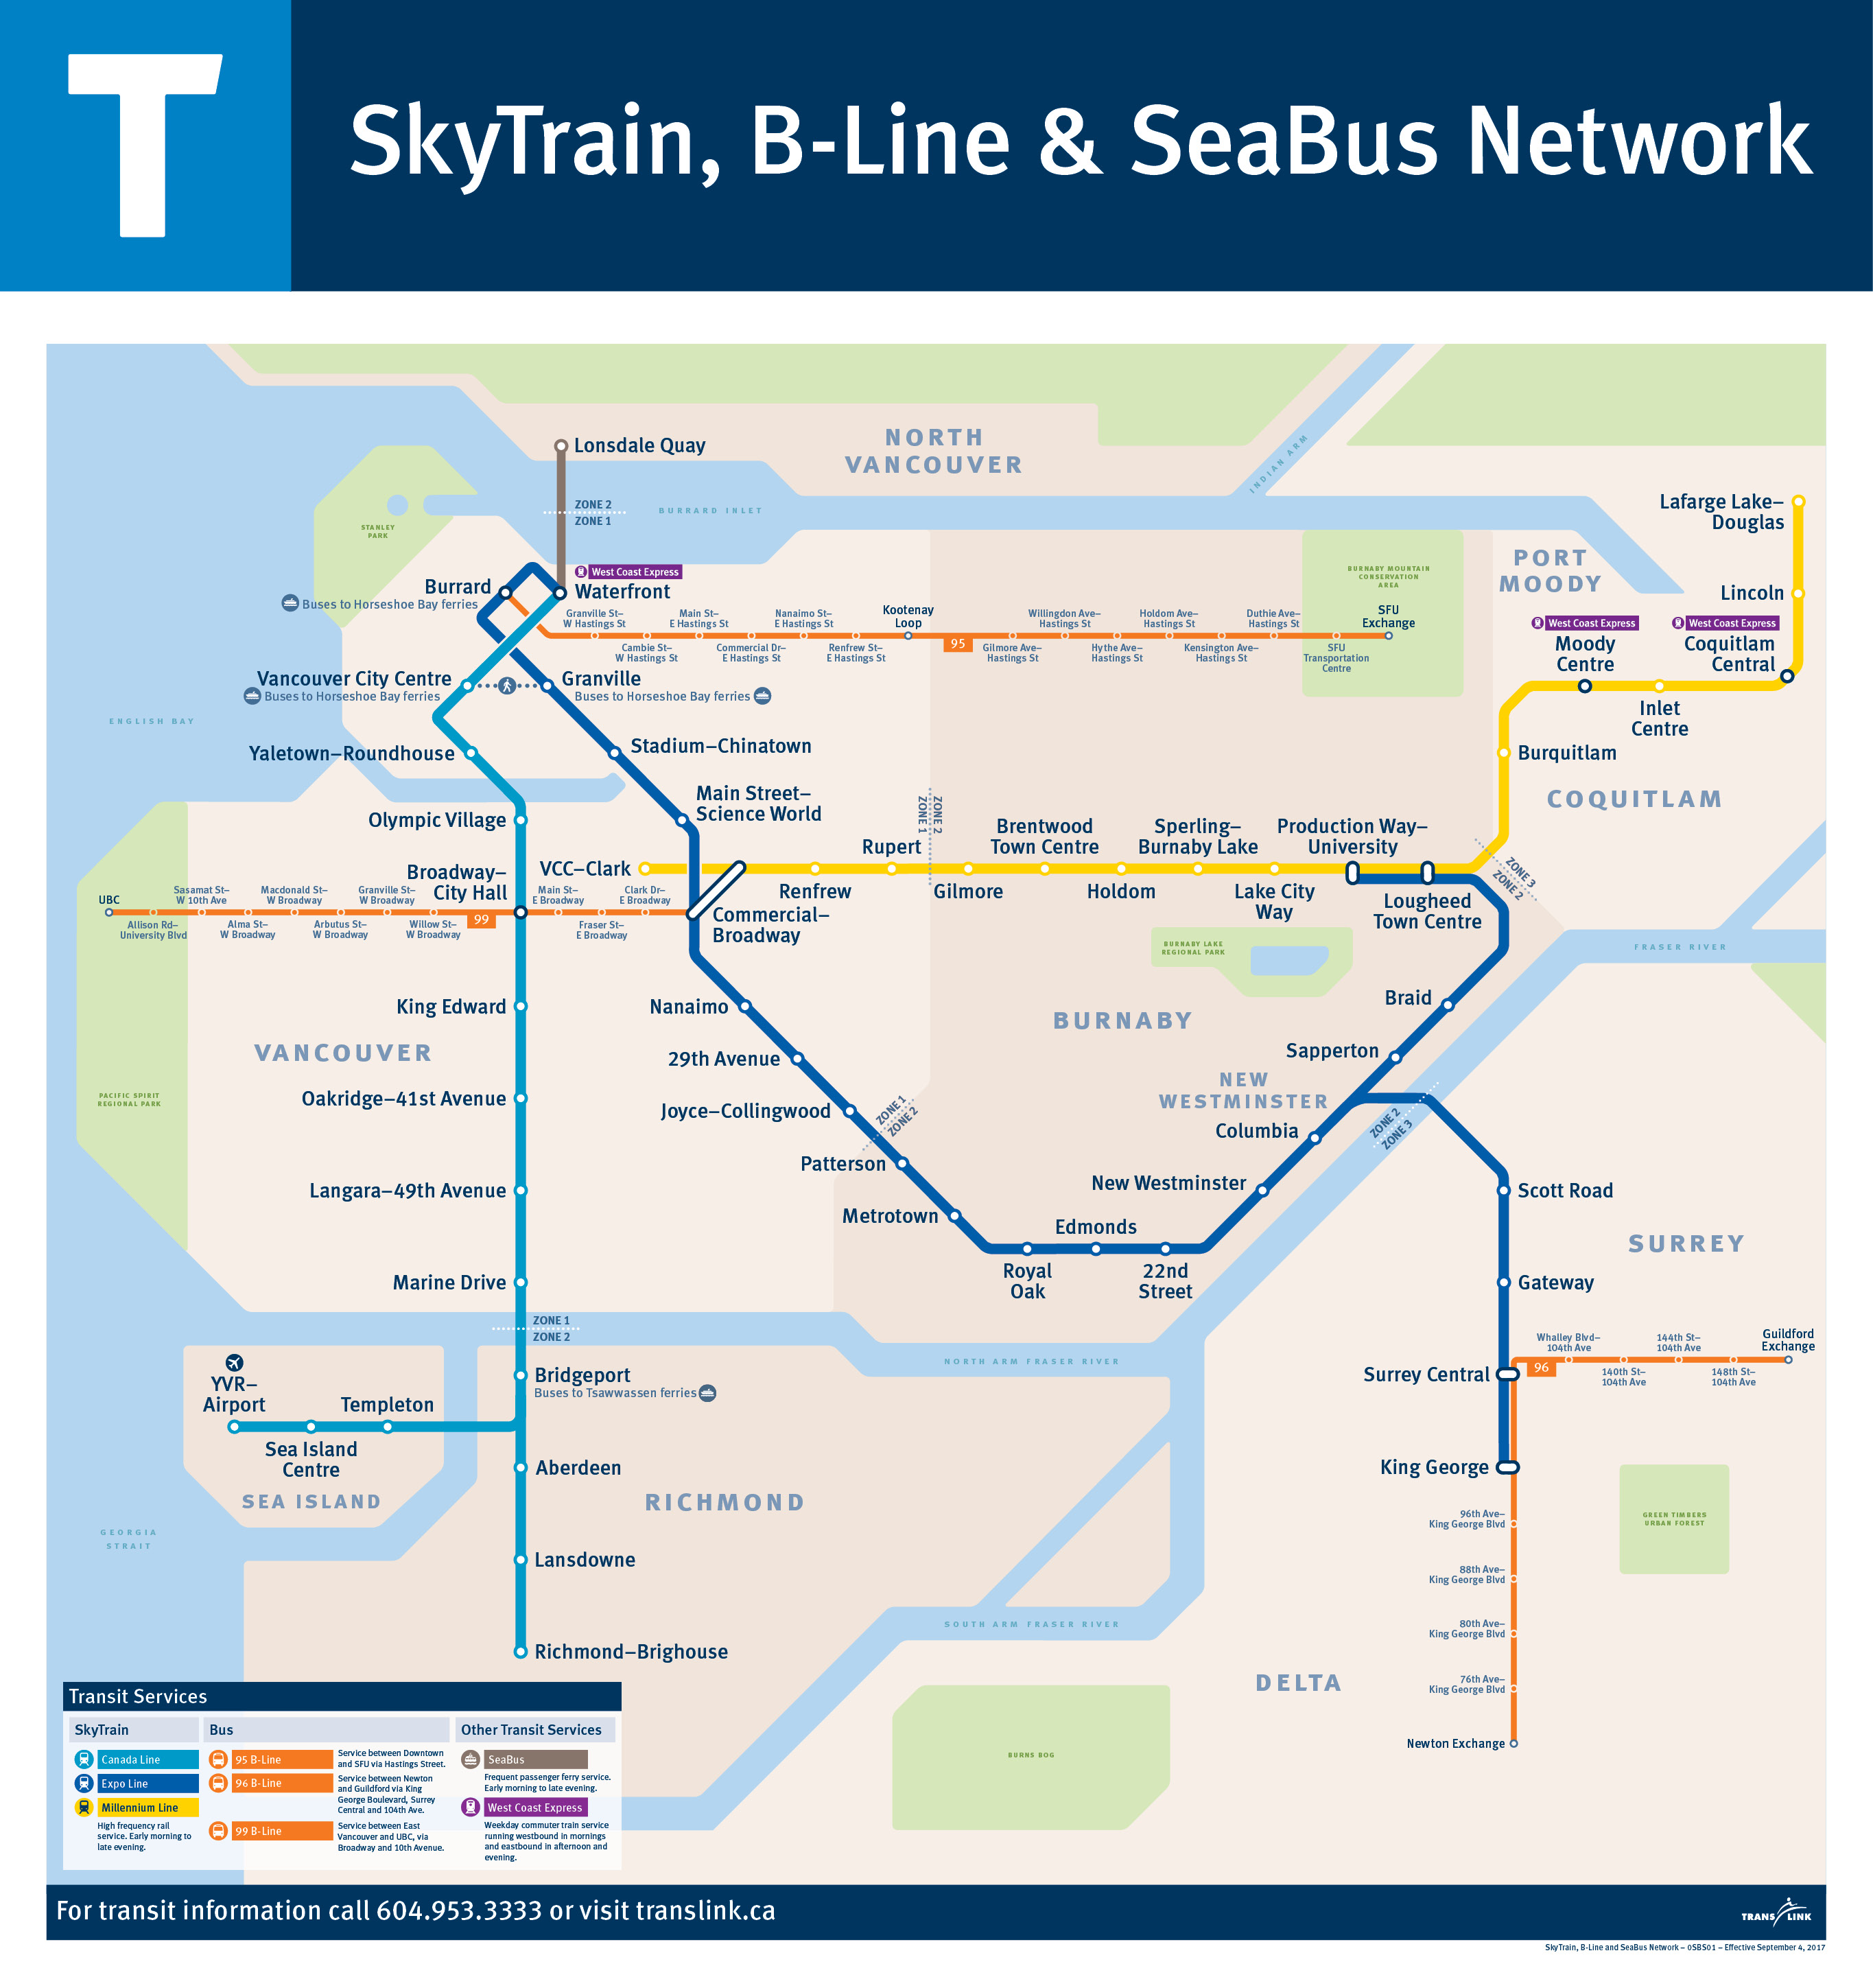 Sky Train Map The Buzzer blog » Wayfinding 101: the SkyTrain, B Line and SeaBus